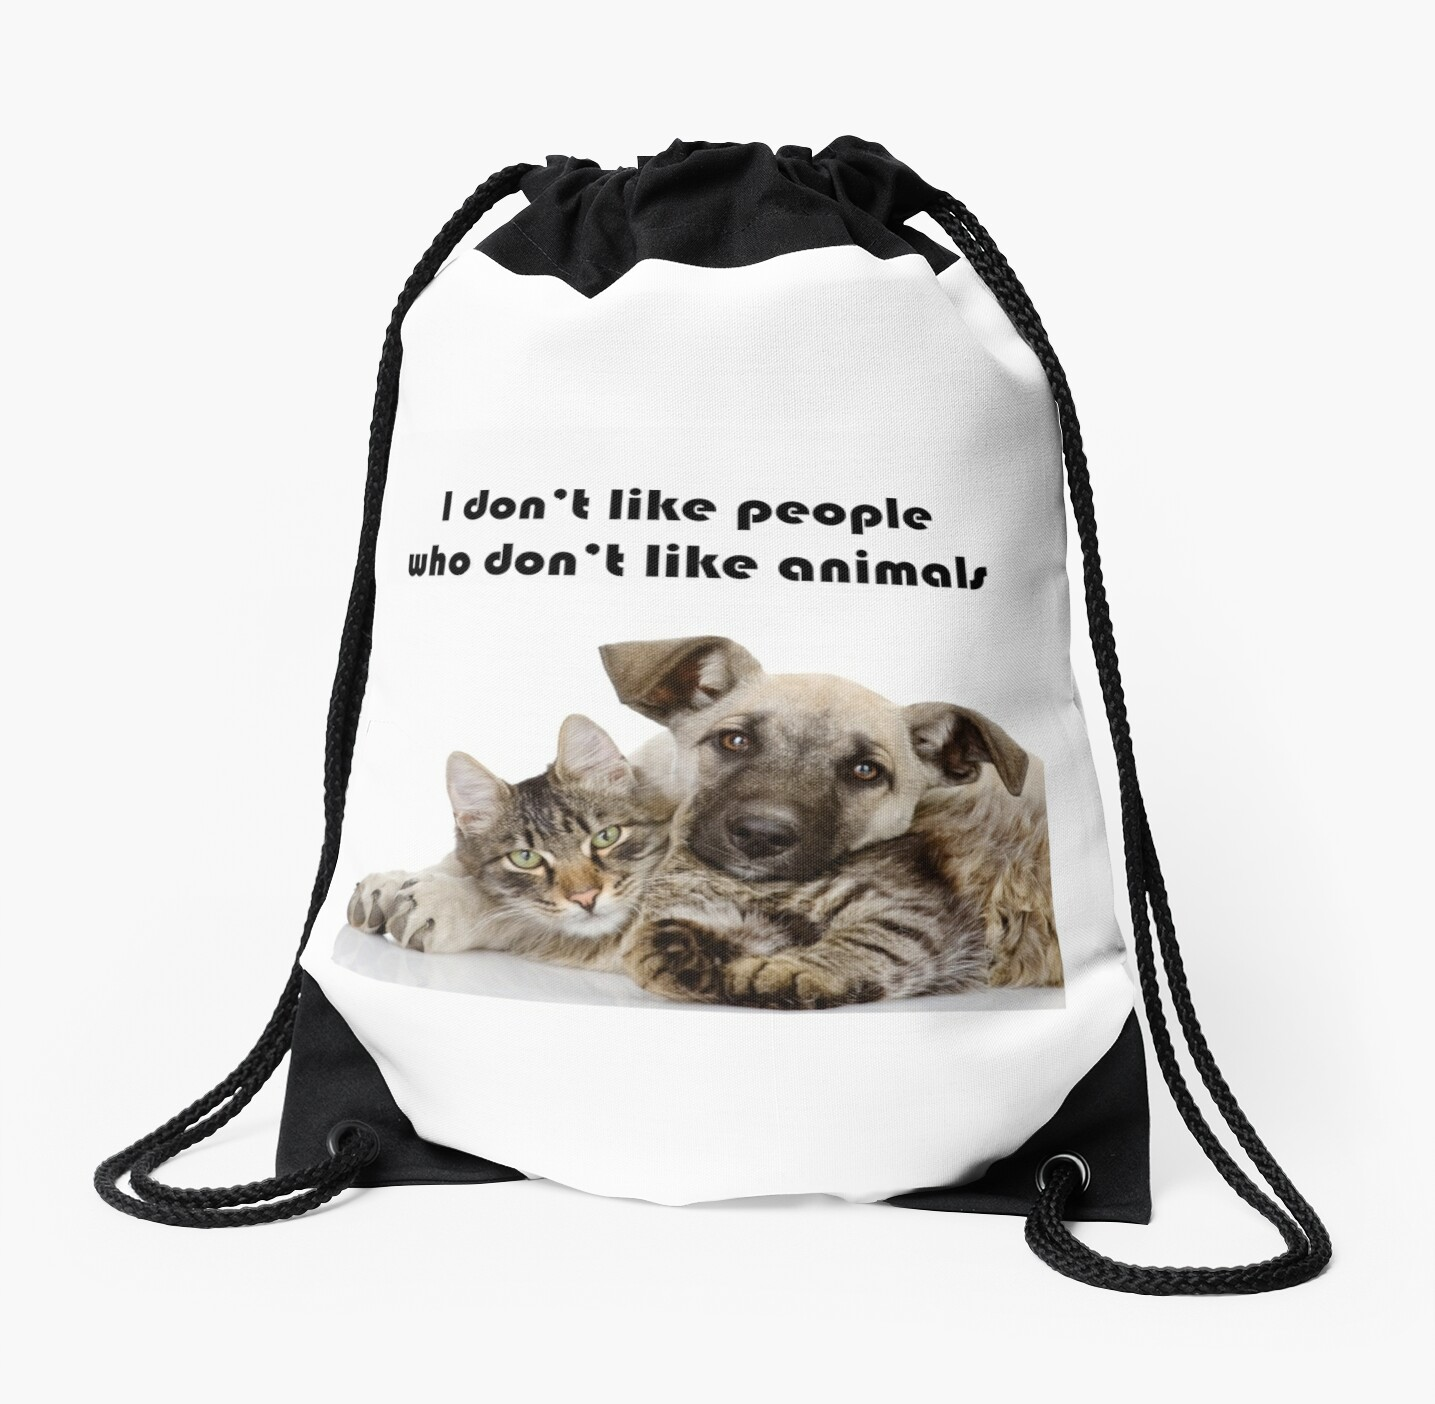 Animal Lover - I dont like people who dont like animals by Argos1